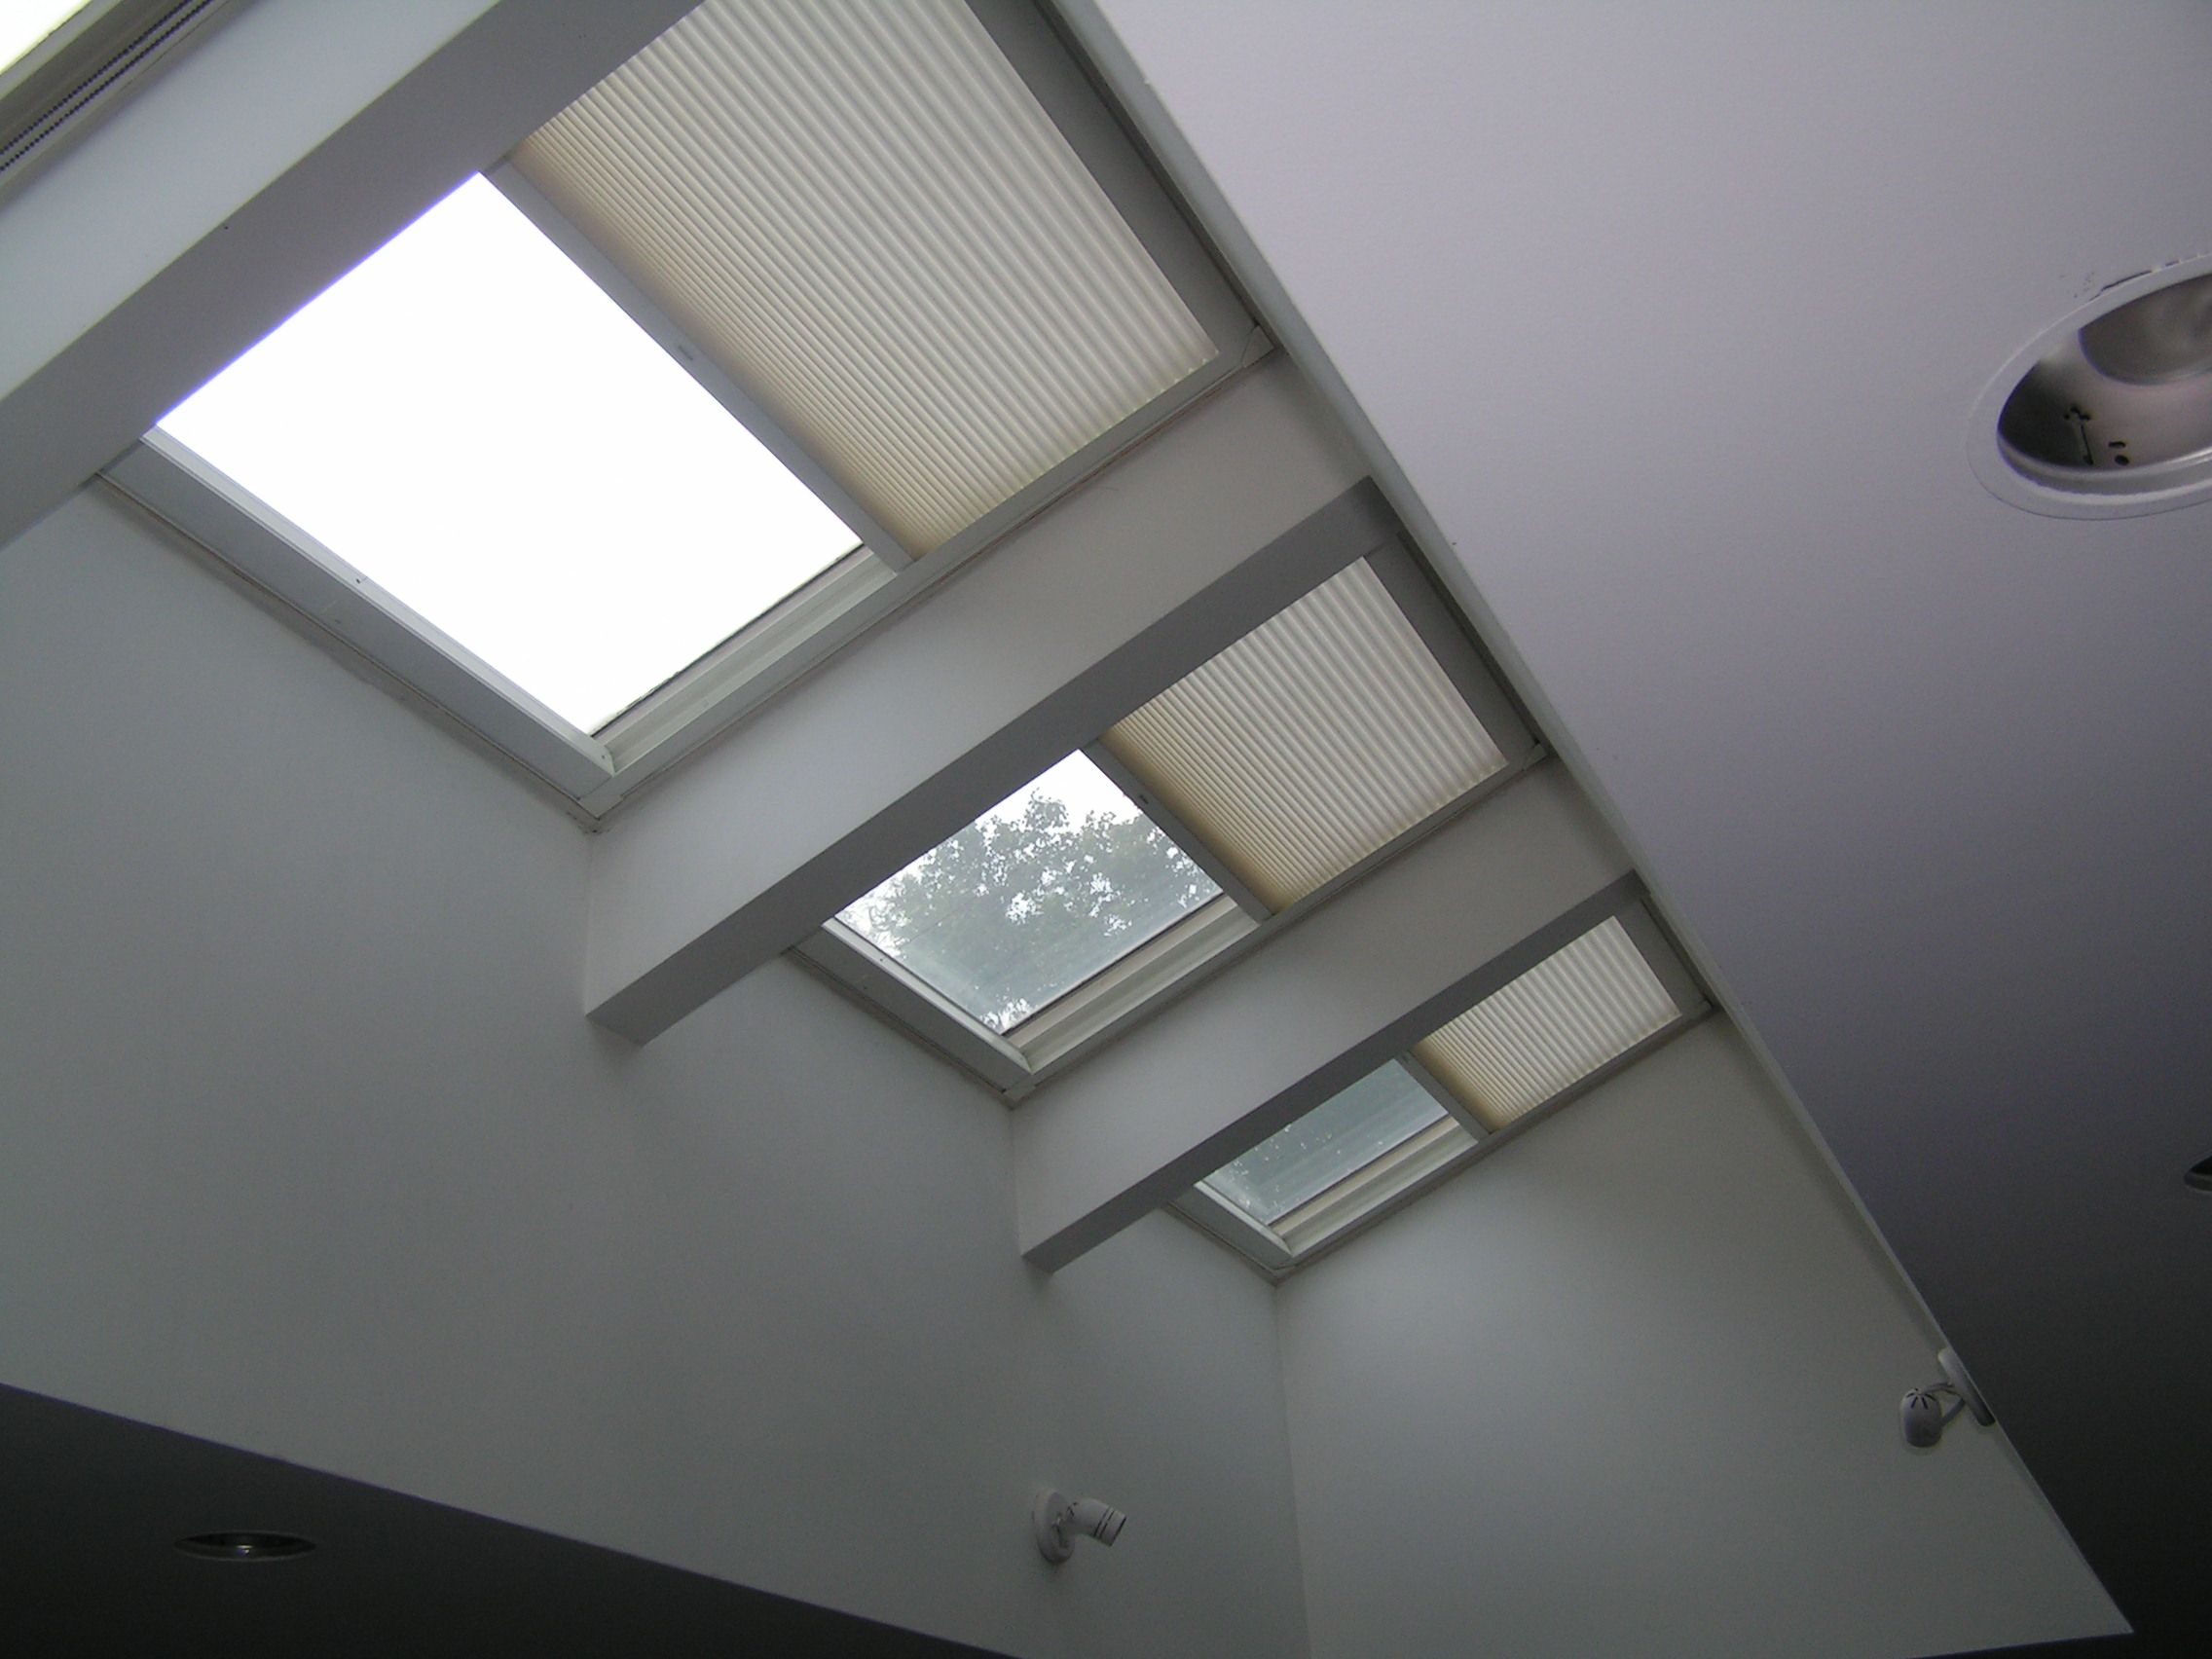 Duette Remote Control Skylight Shades Keep The Light